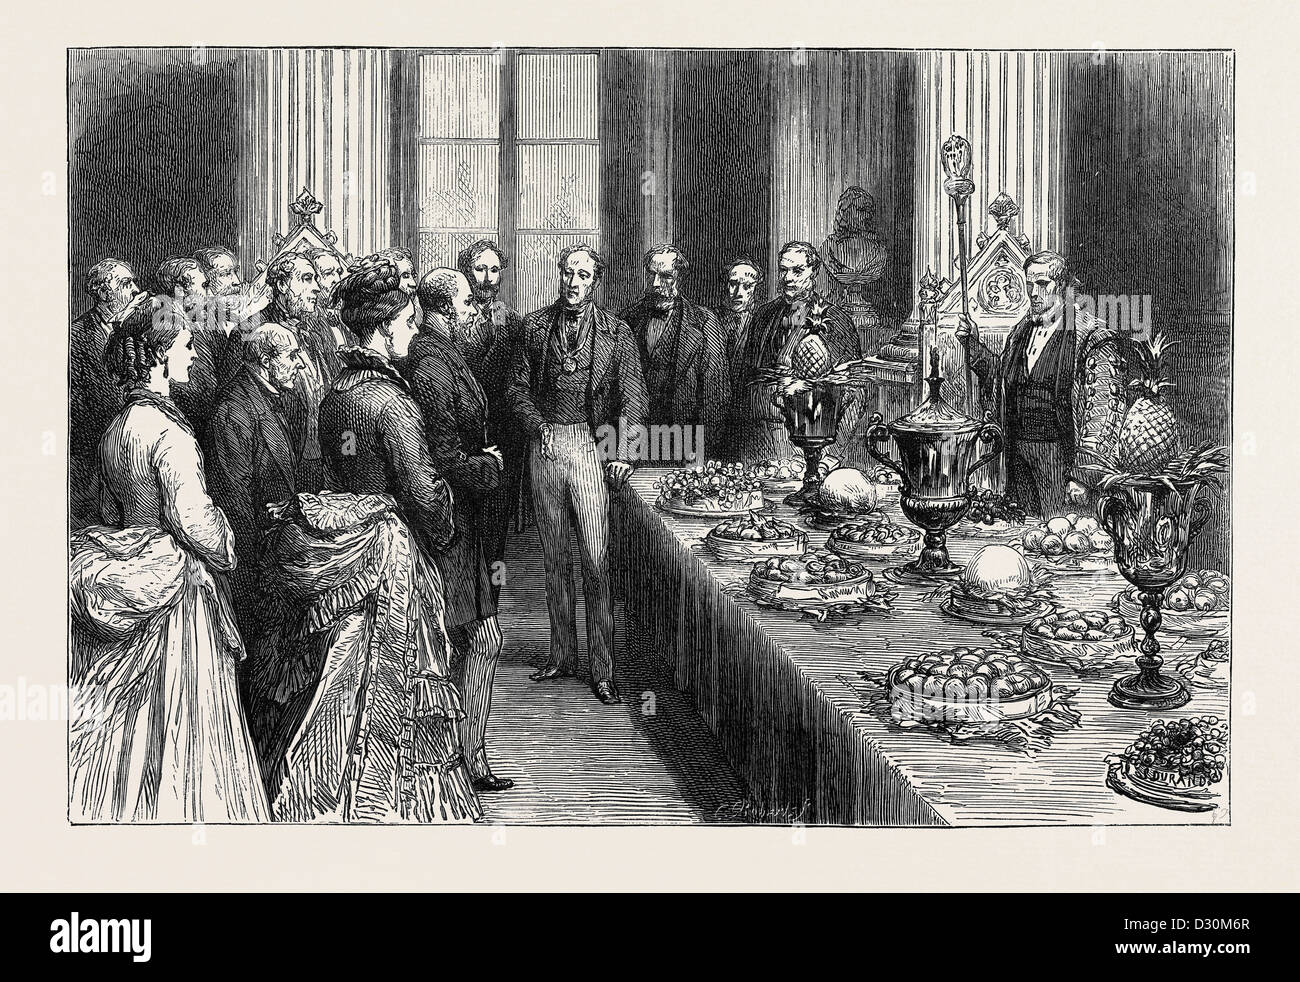 PRESENTATION OF FRUIT TO THE LORD MAYOR OF LONDON, AN ANNUAL CUSTOM OF THE FRUITERERS' COMPANY, AUGUST 8, 1874 - Stock Image